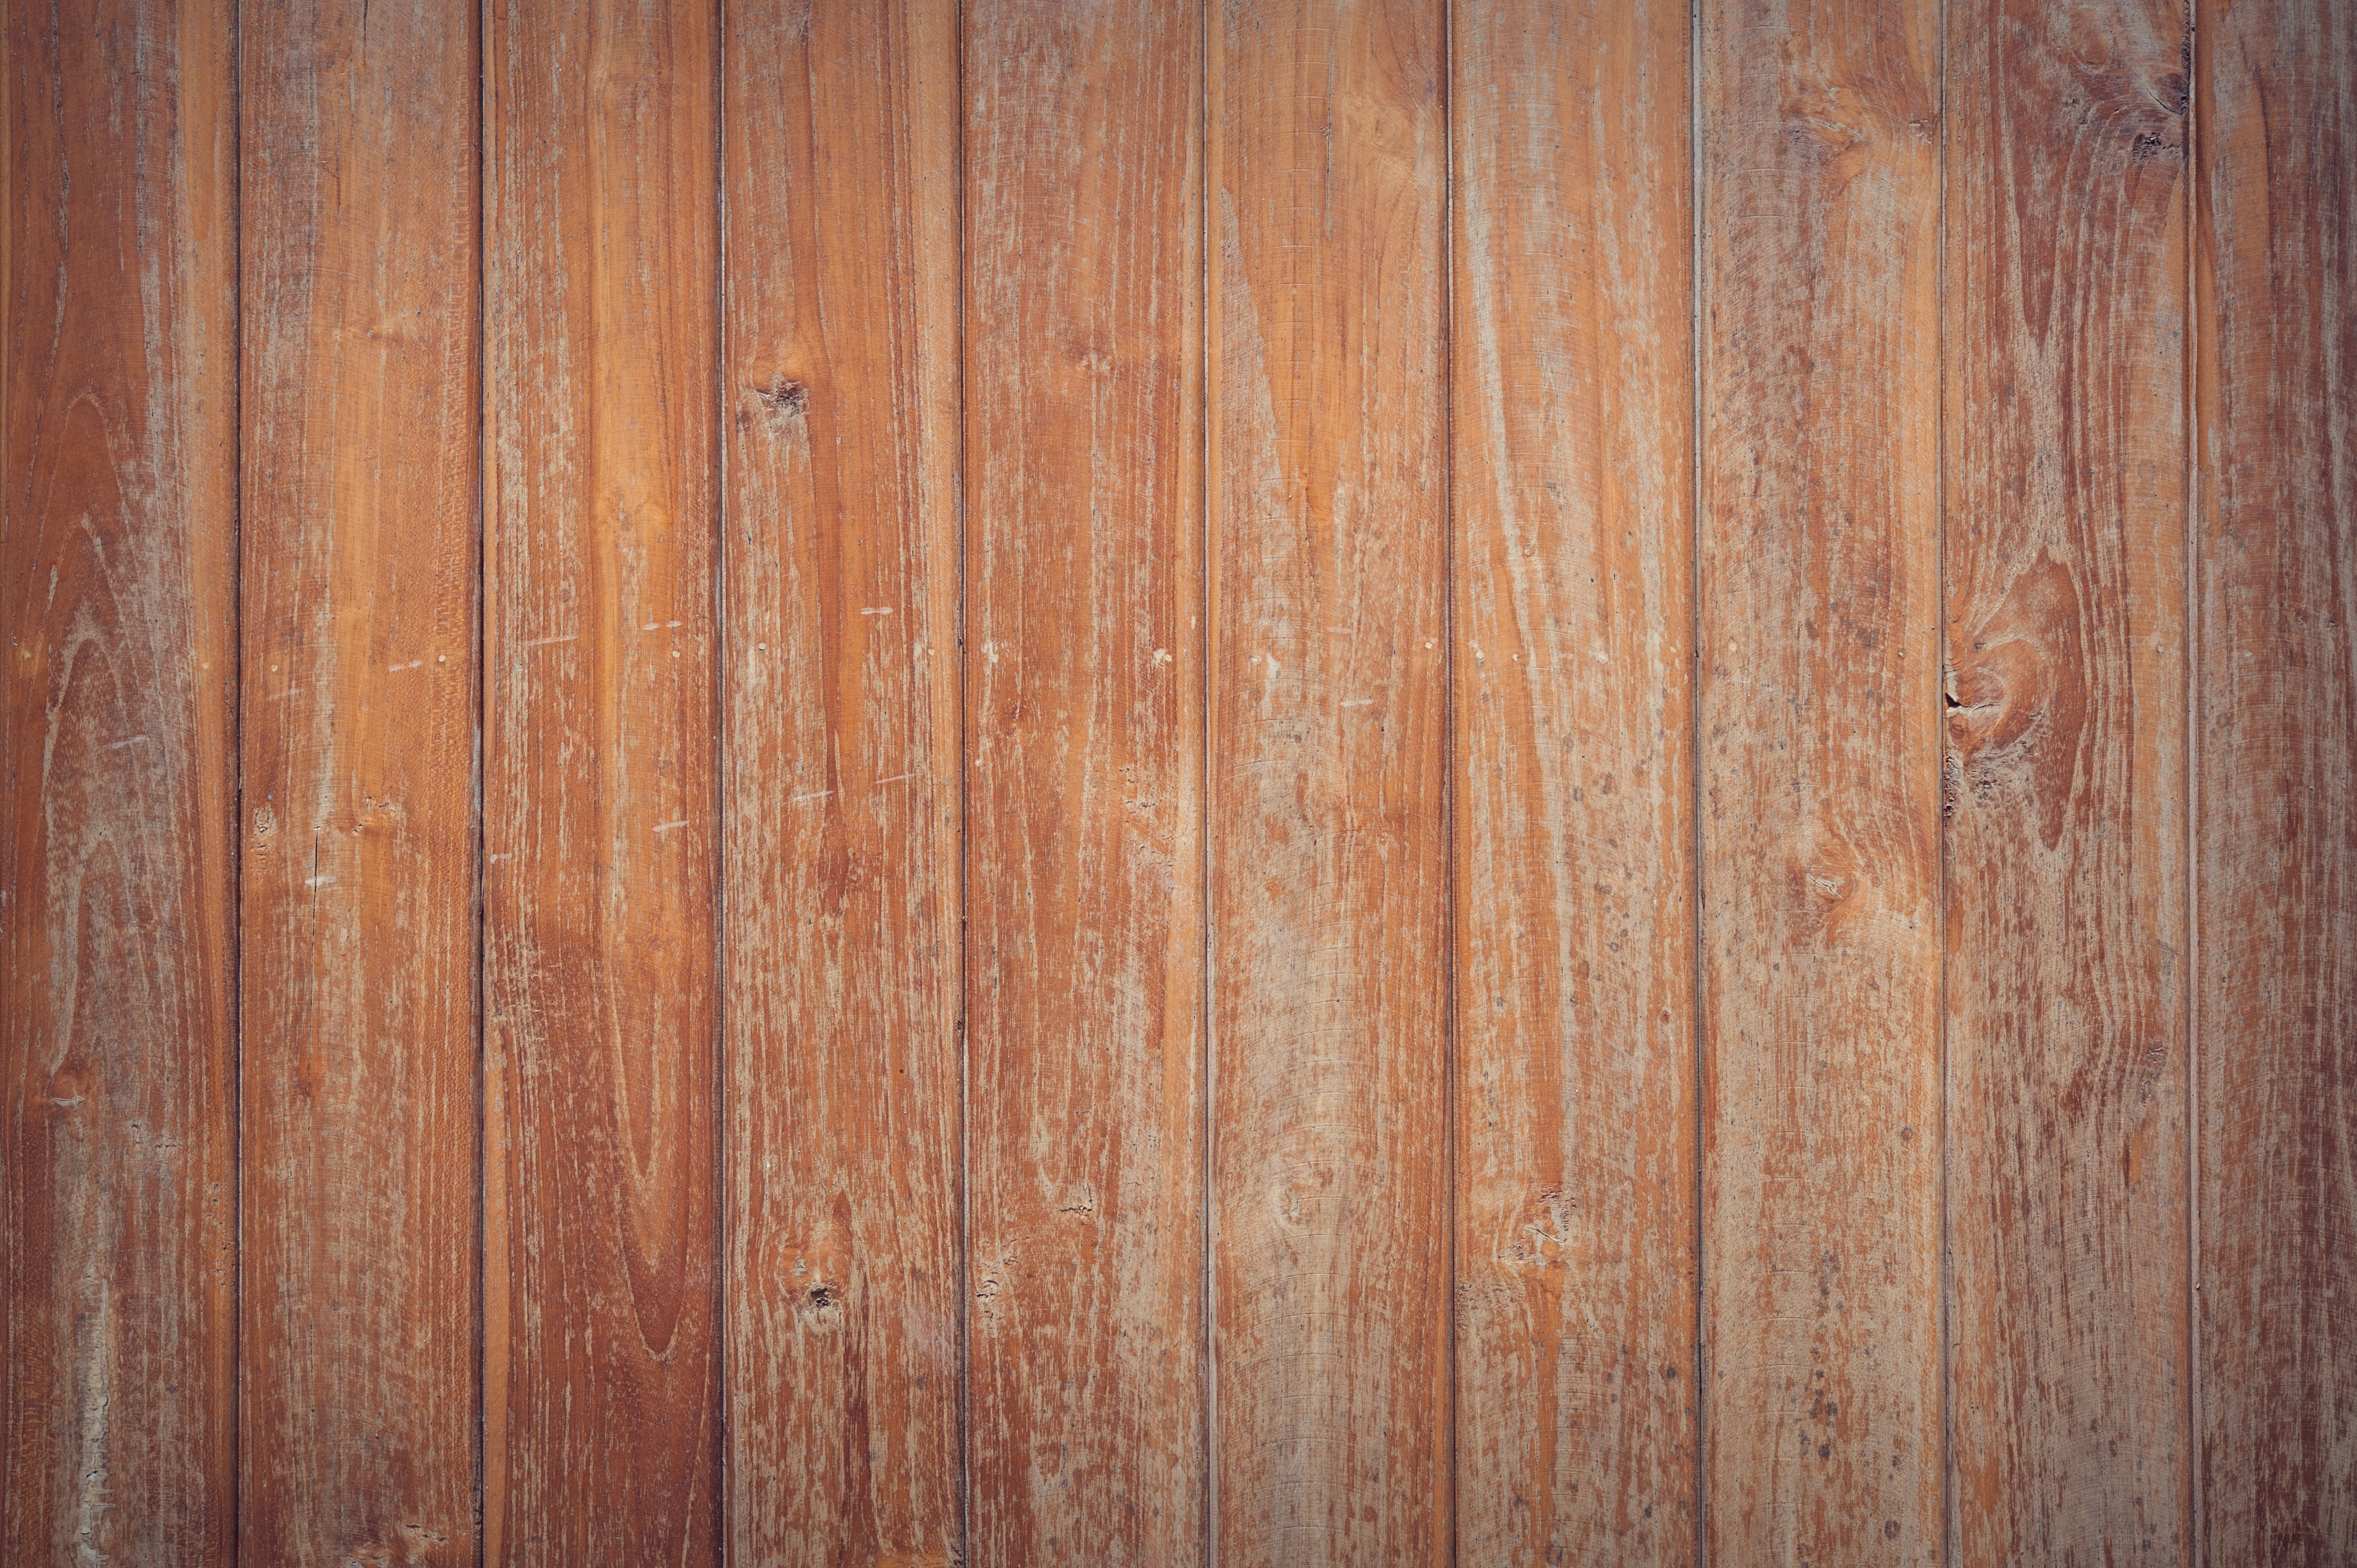 Birthday Banner Wallpaper Hd Brown Wooden Surface · Free Stock Photo